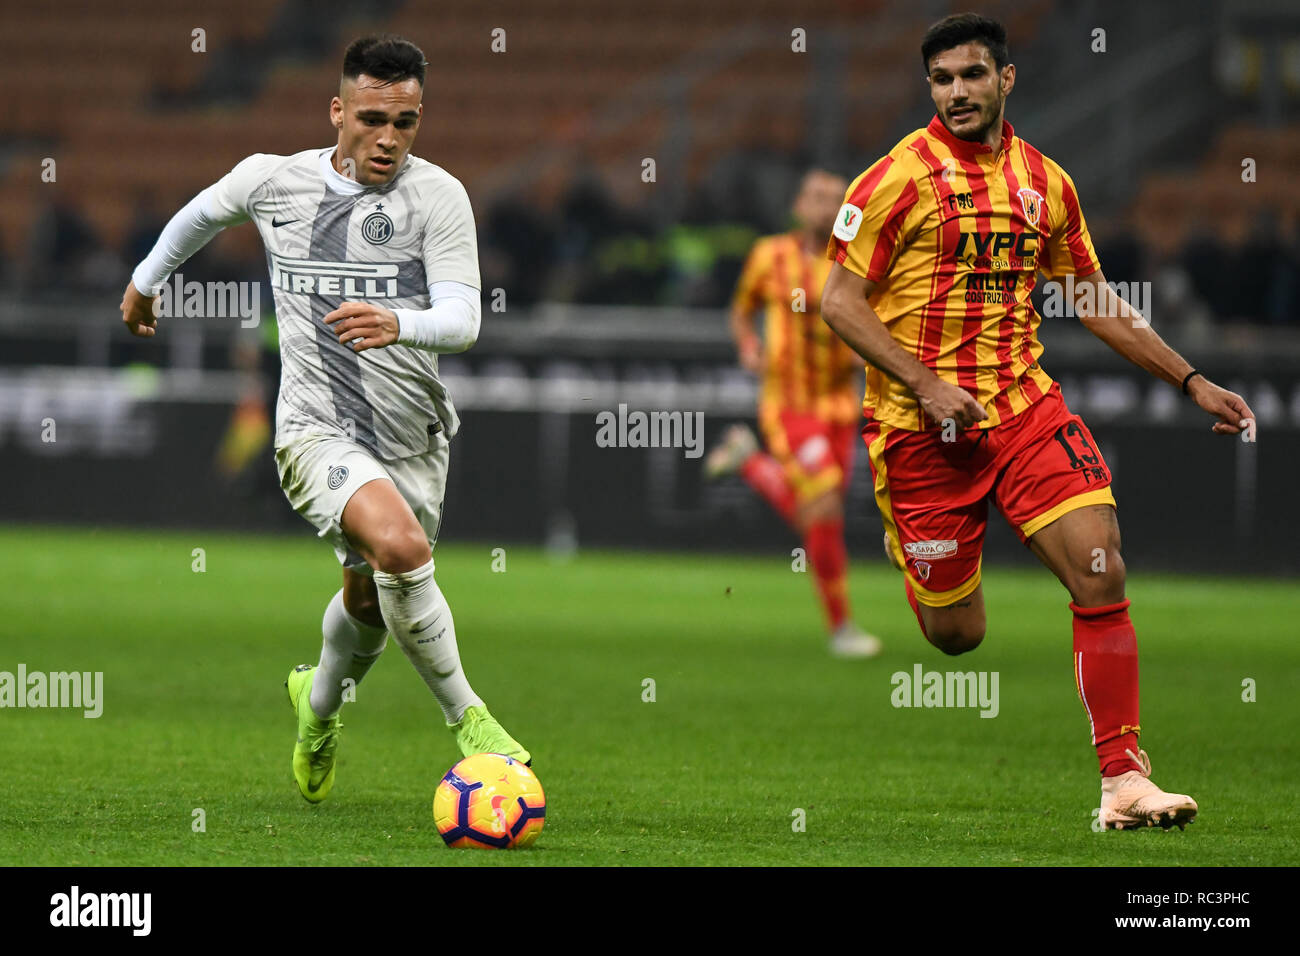 Milan, Italy. 13th Jan 2019. Forward Lautaro Martínez (Inter) controls the ball with Defender Alessandro Tuia during the Italian Cup 'Coppa Italia' football match, Inter Milan vs Benevento Calcio at San Siro Meazza Stadium in Milan, Italy on 13 January 2019. The football match is played behind closed doors after Napoli's Senegalese player Kalidou Koulibaly was subject to racist chants by FC Internazionale's 'ultra' fans during the Boxing Day match. Credit: Piero Cruciatti/Alamy Live News Stock Photo